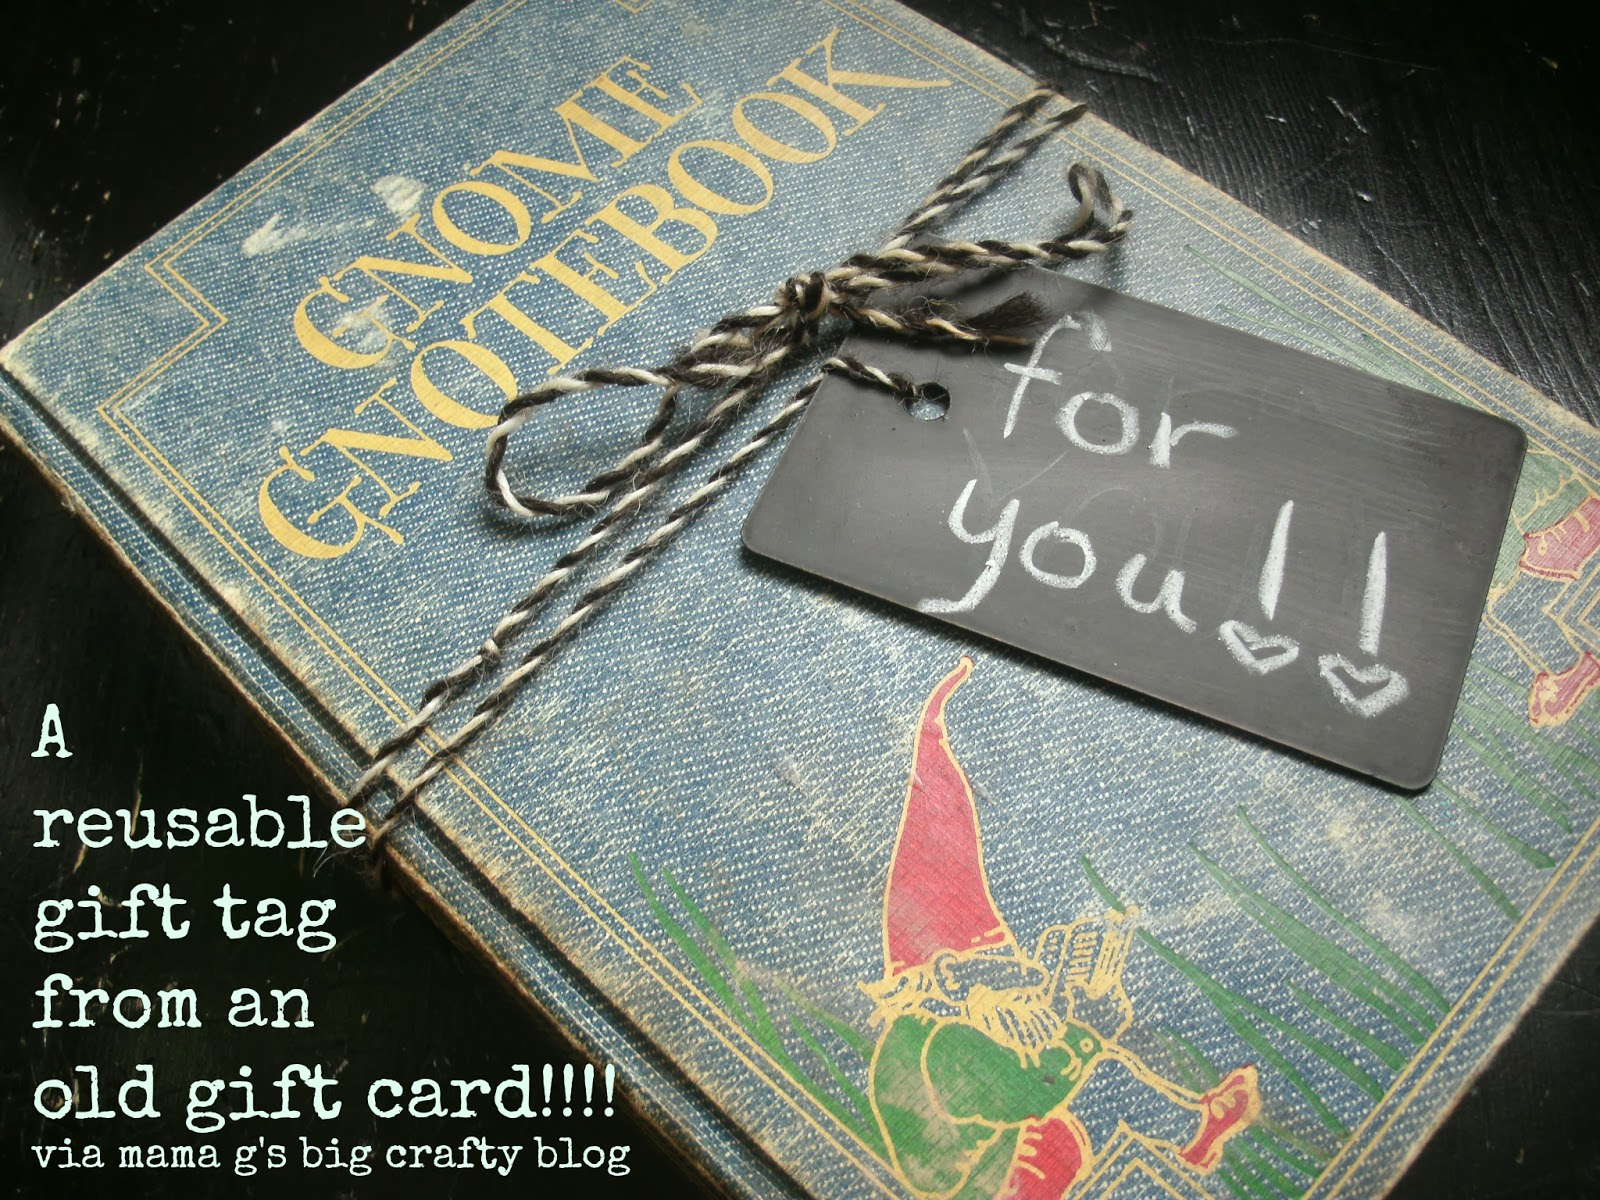 http://bigcraftyblog.blogspot.com/2013/01/upcycling-gift-cards.html?showComment=1390059215881#c7681576984147939721